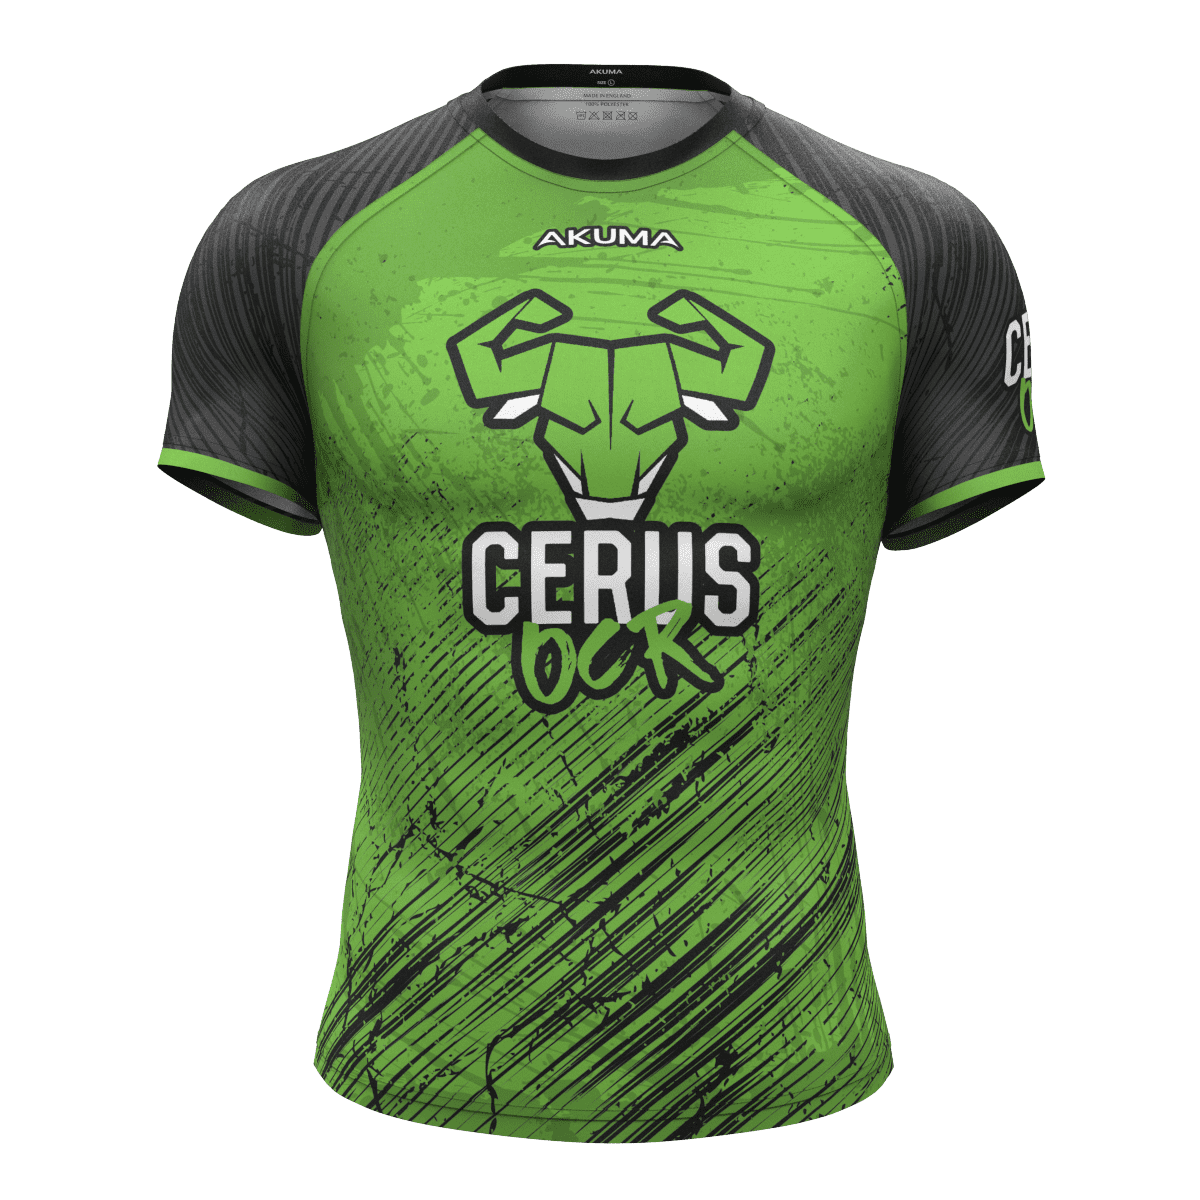 Cerus Men's Fortitude Jersey by Akuma